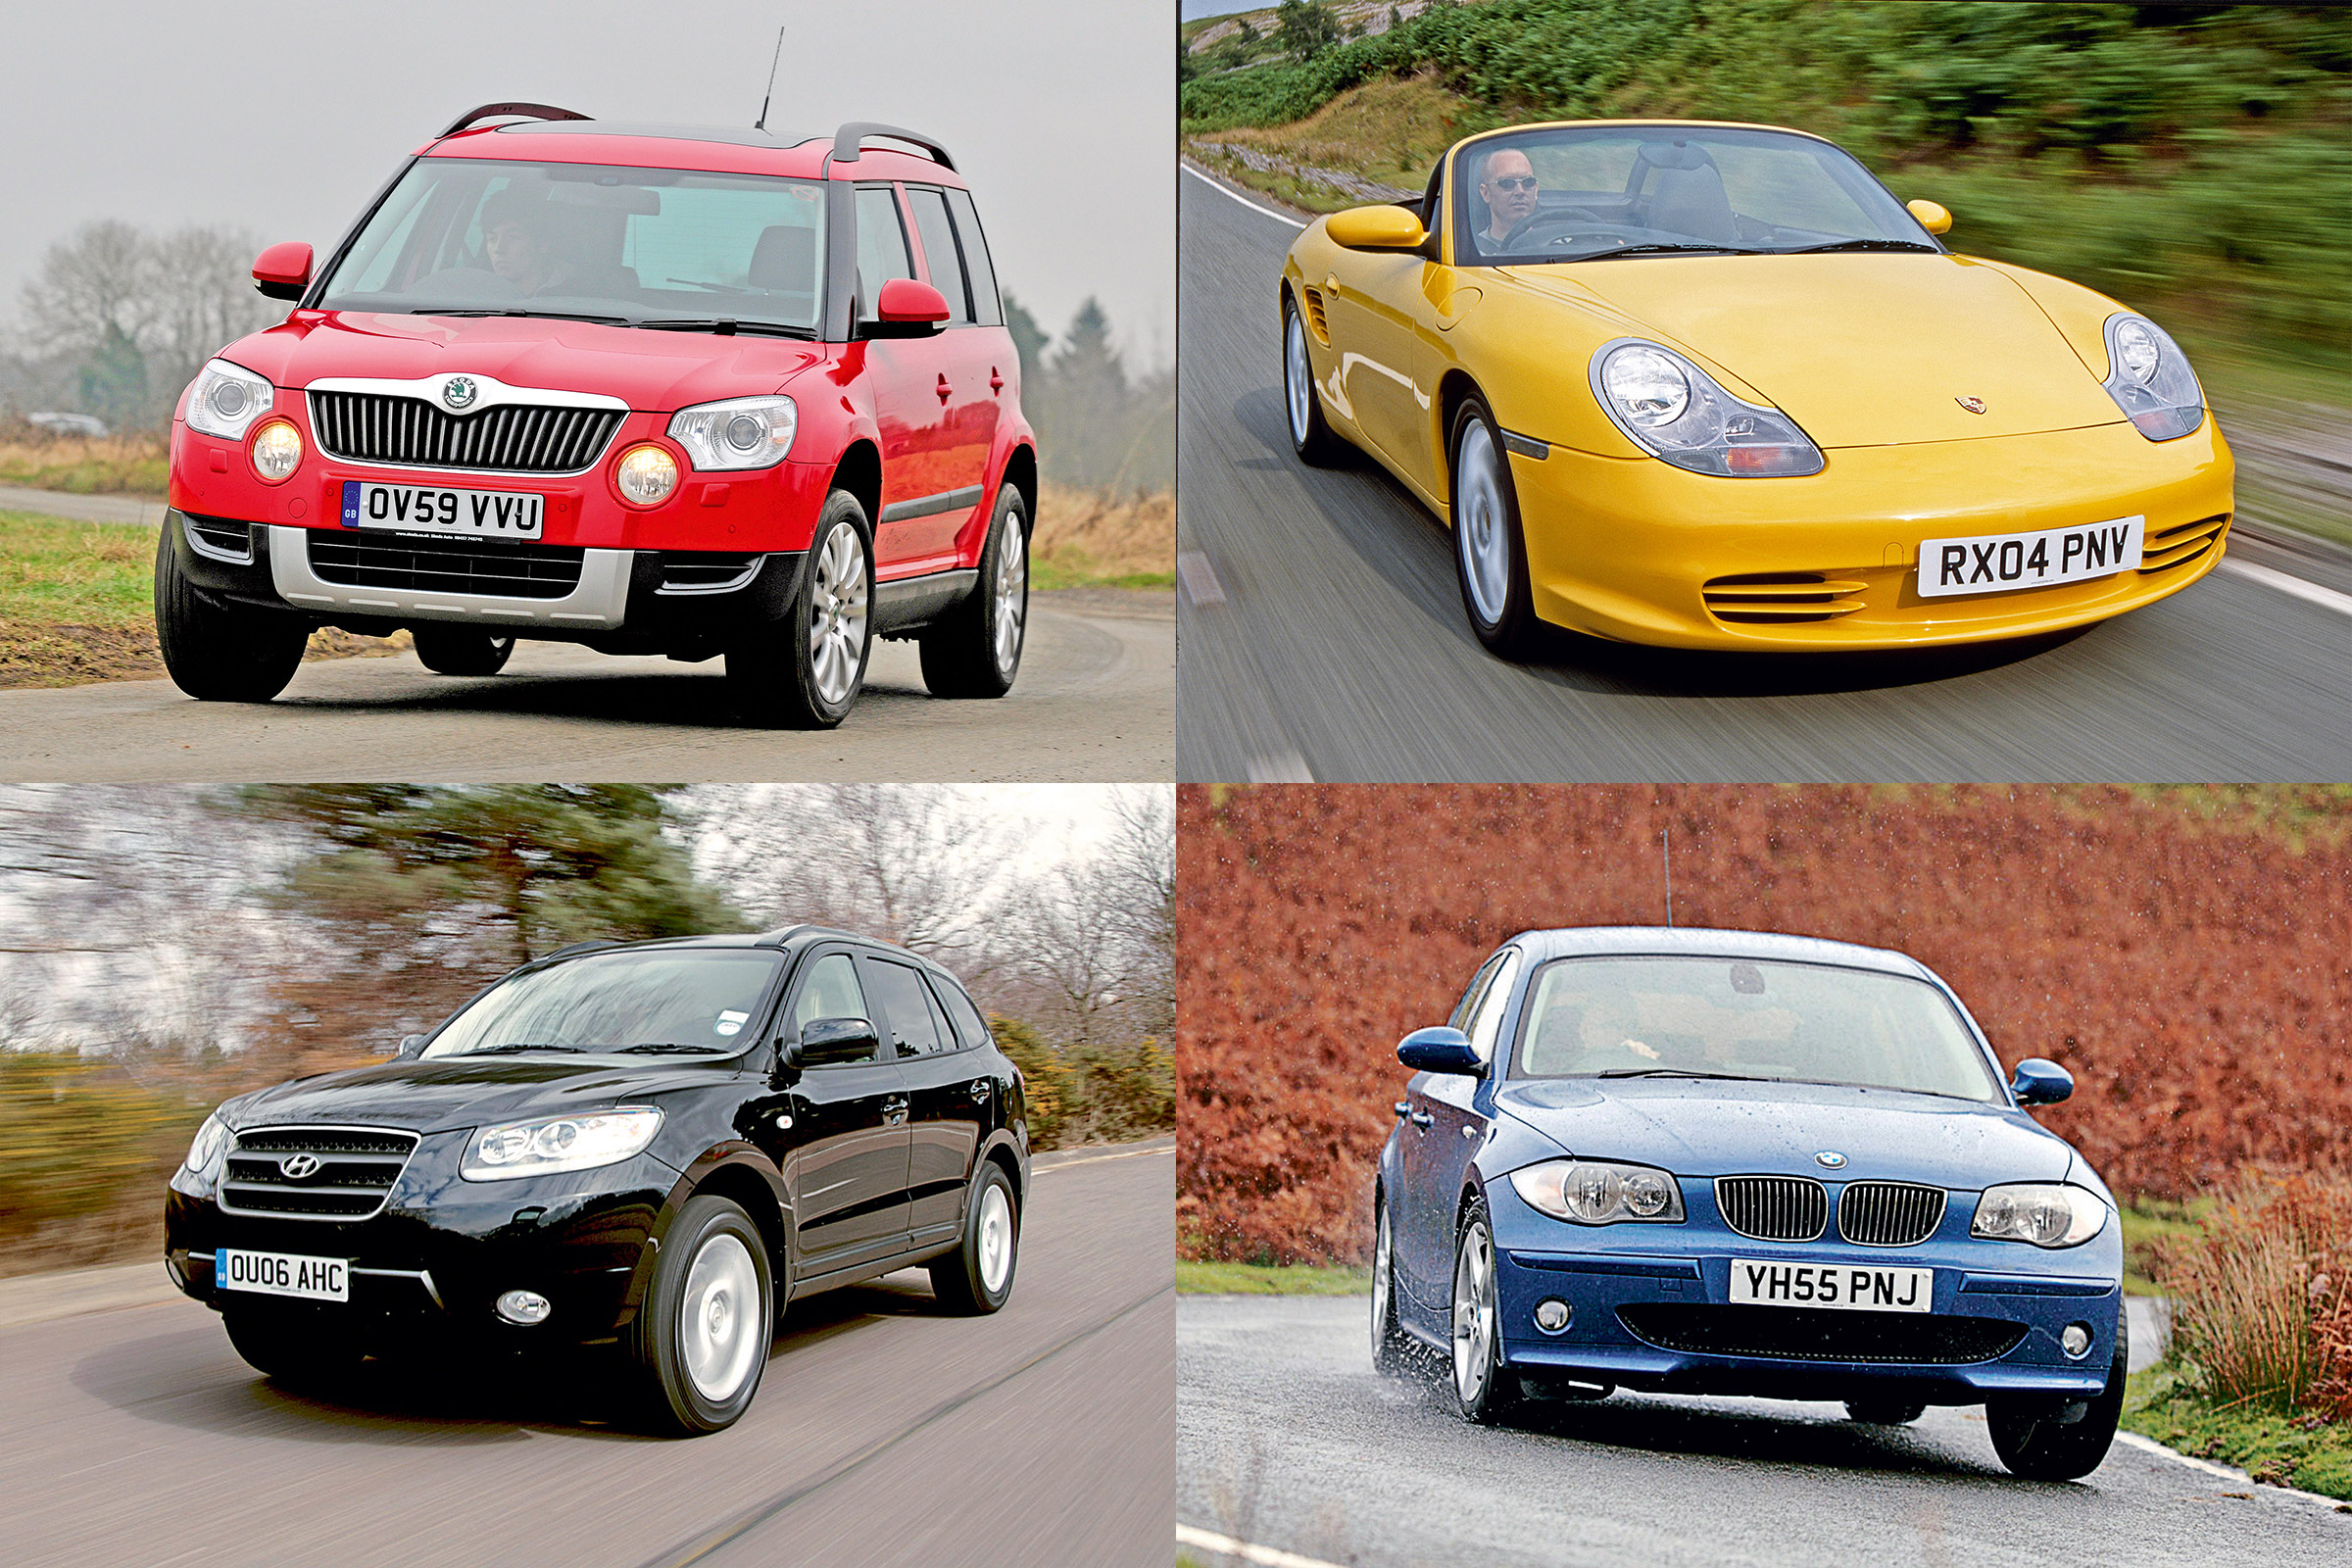 Cars for Sale Near Me Under 5000 Inspirational Best Cars for £5 000 or Less